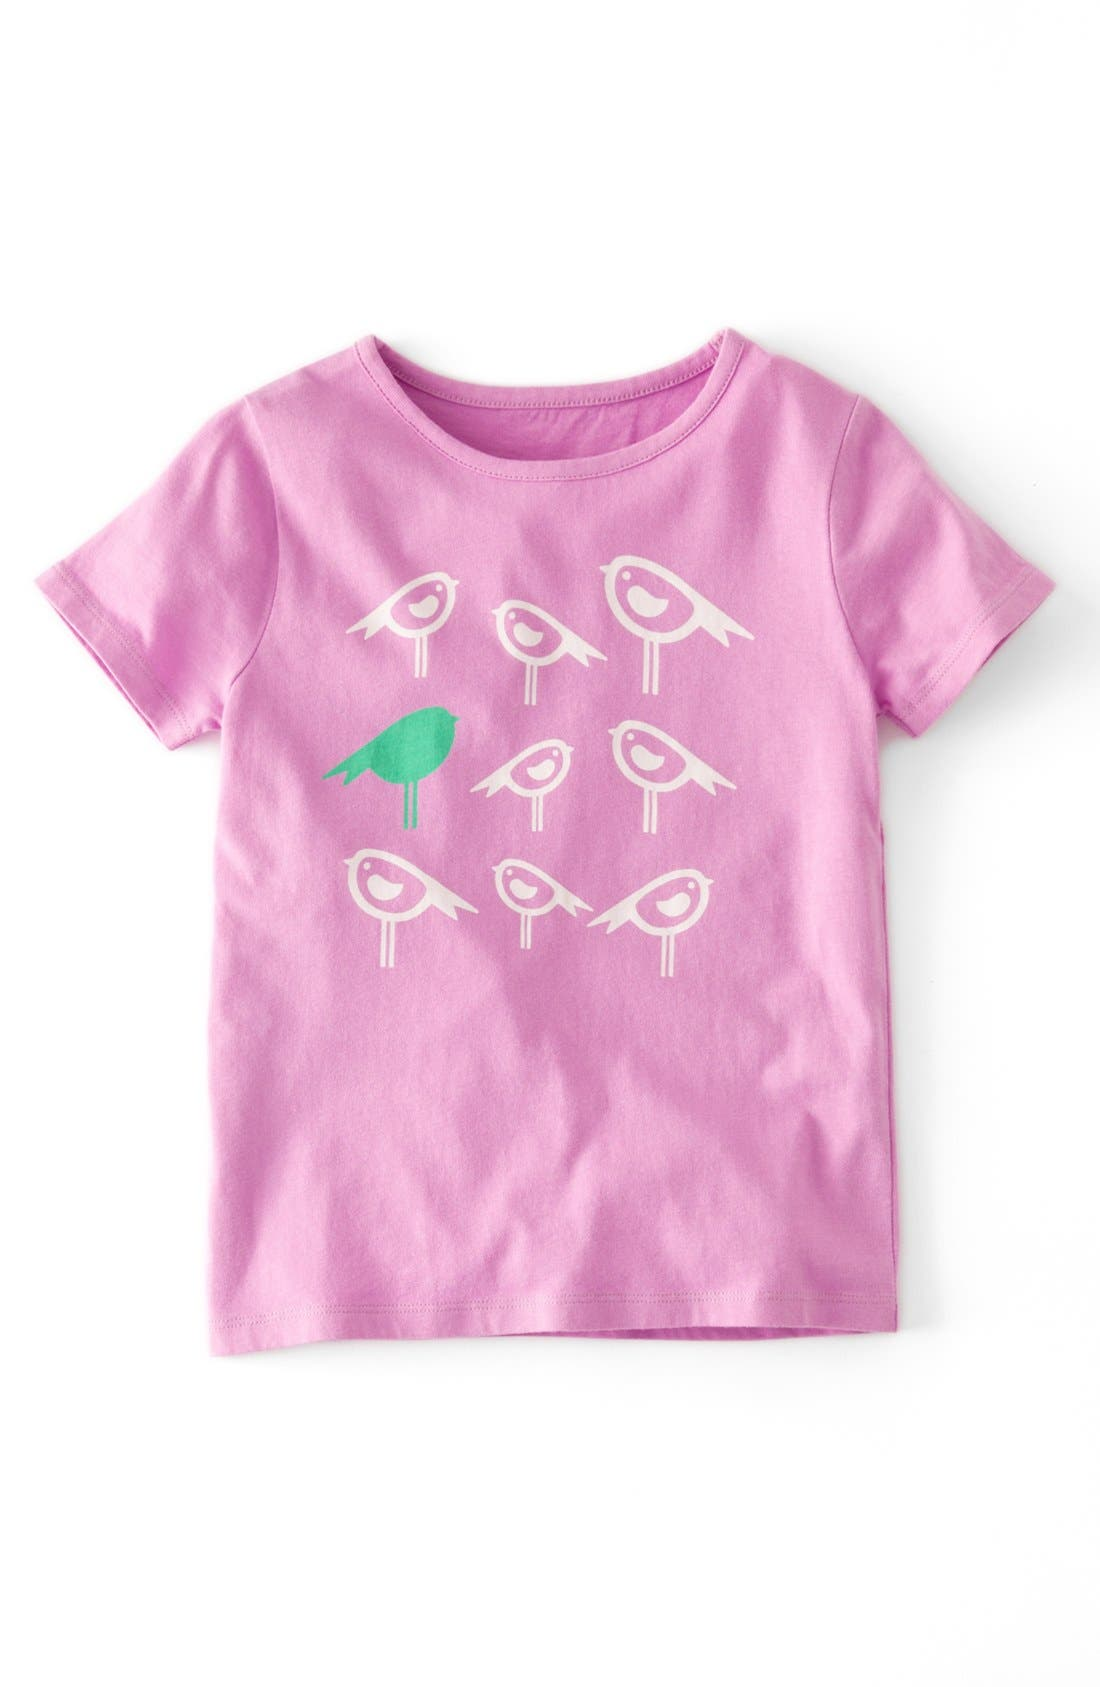 Main Image - Mini Boden Short Sleeve T-Shirt (Toddler Girls, Little Girls & Big Girls)(Online Only)